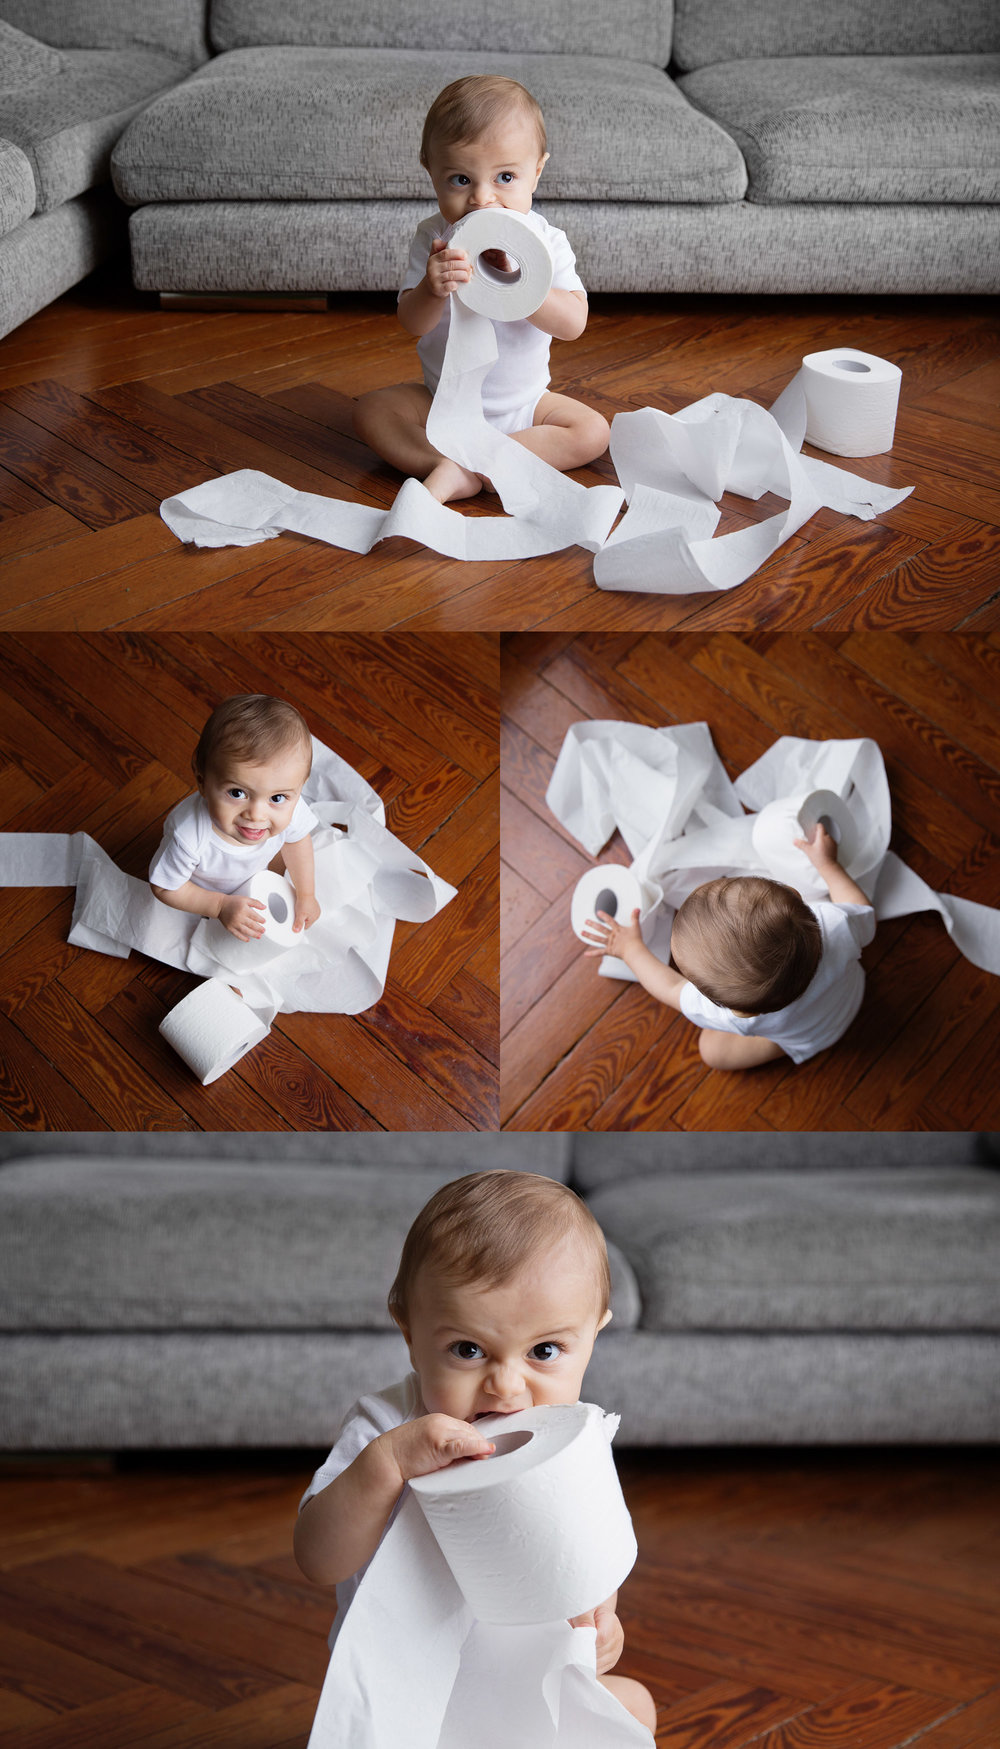 Baby making mess with toilet paper rolls by baby commercial photographer Lisa Tichane